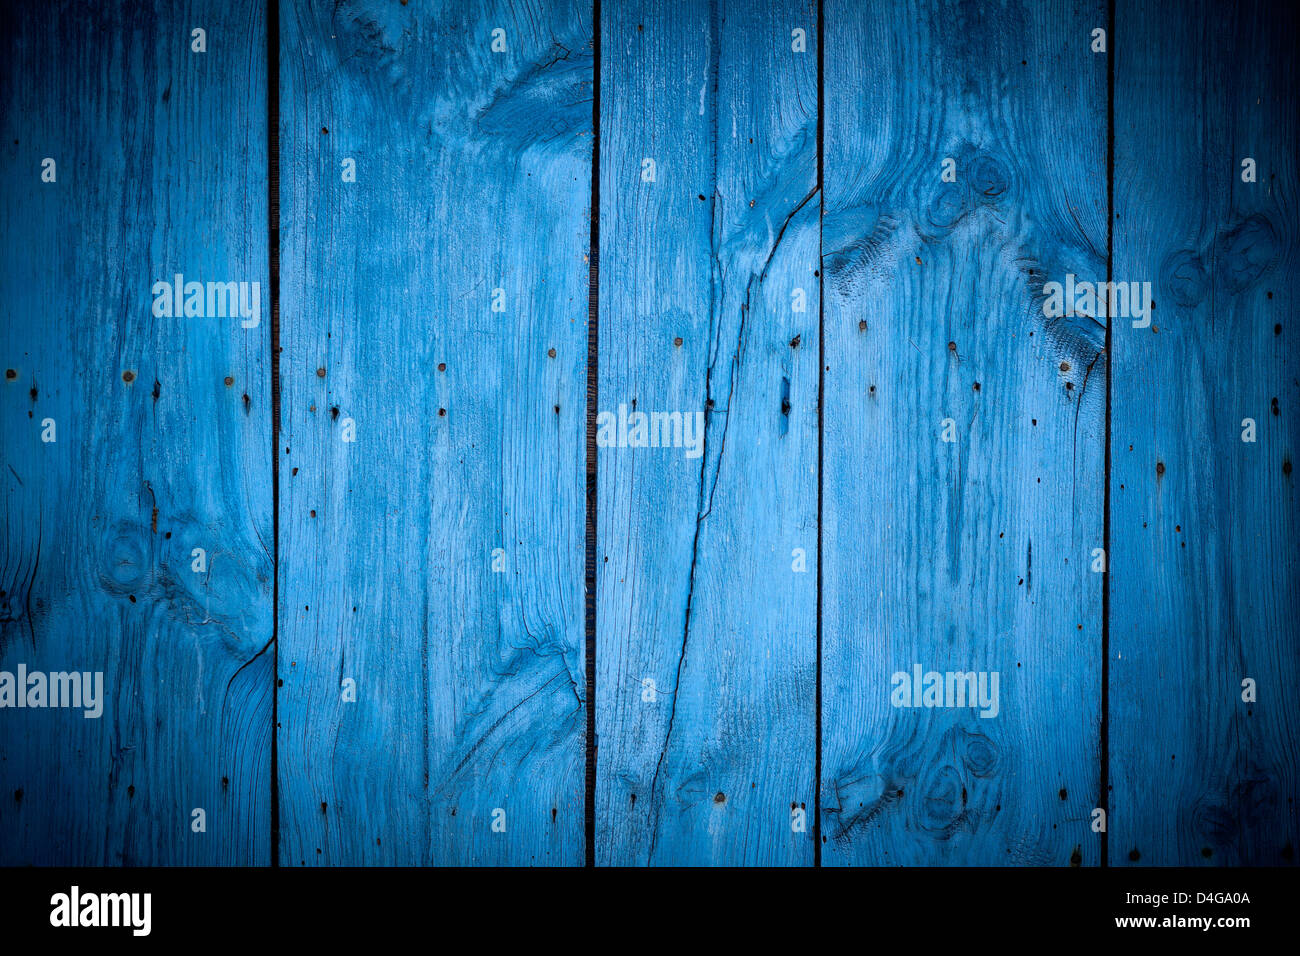 Texture of Wood blue panel for background vertical - Stock Image